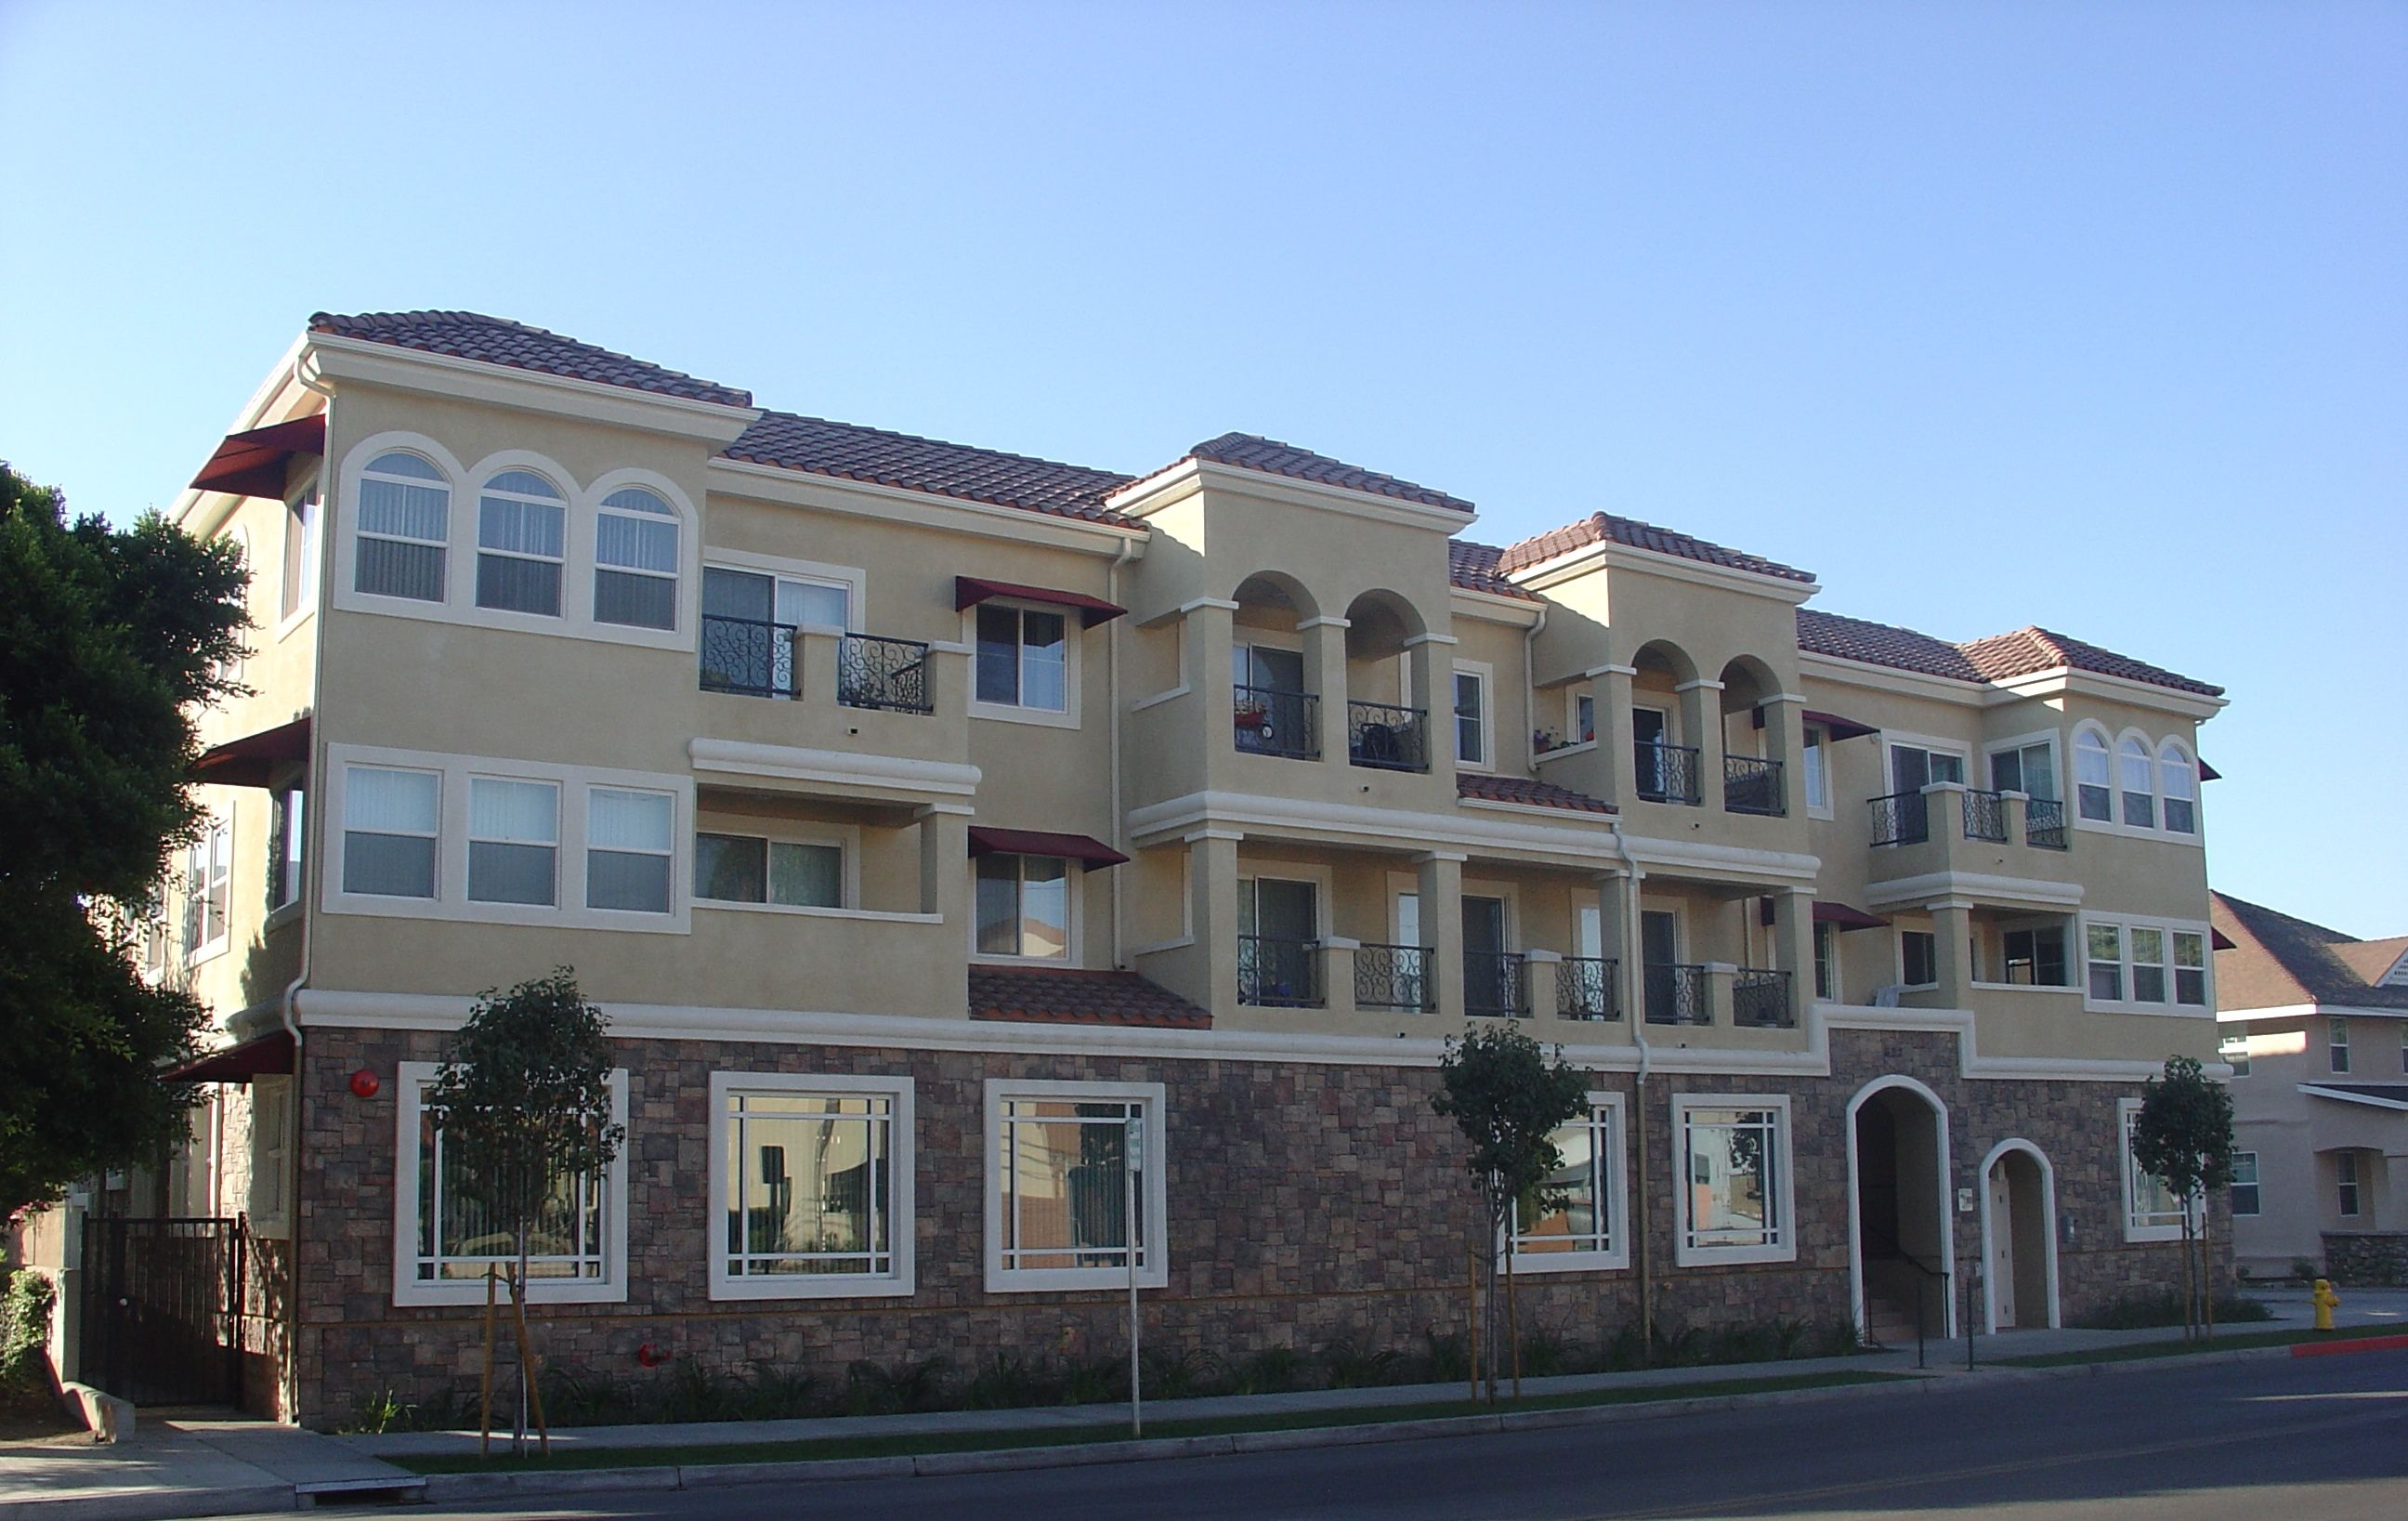 fabulous, large glass windows Second story balconies  with wrought iron balconies and exterior siting spaces.